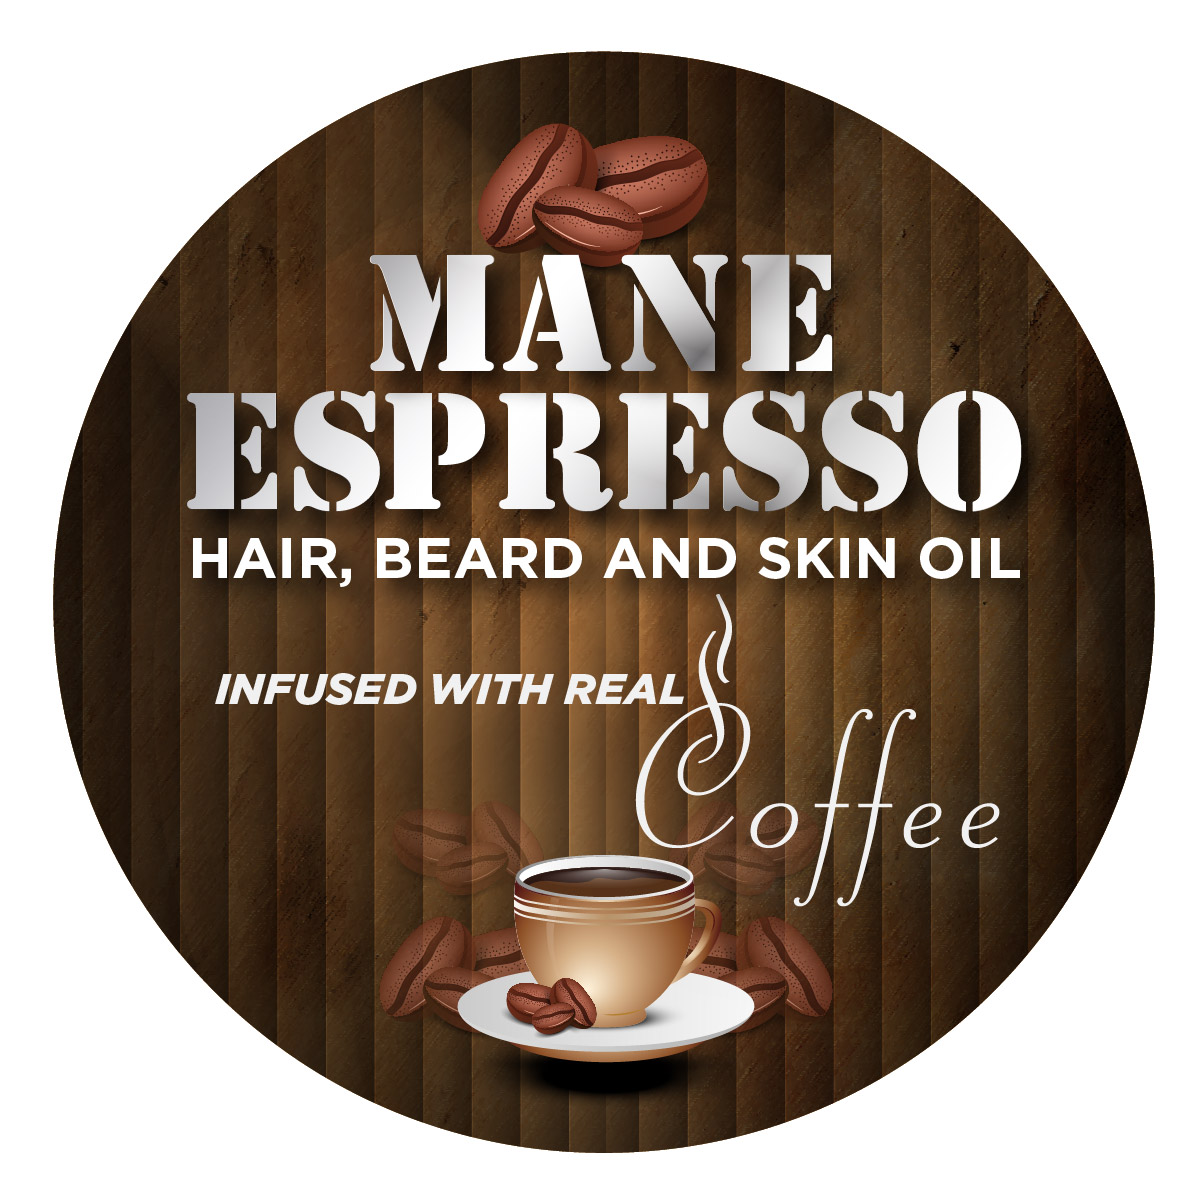 Mane Espresso® Circle Label